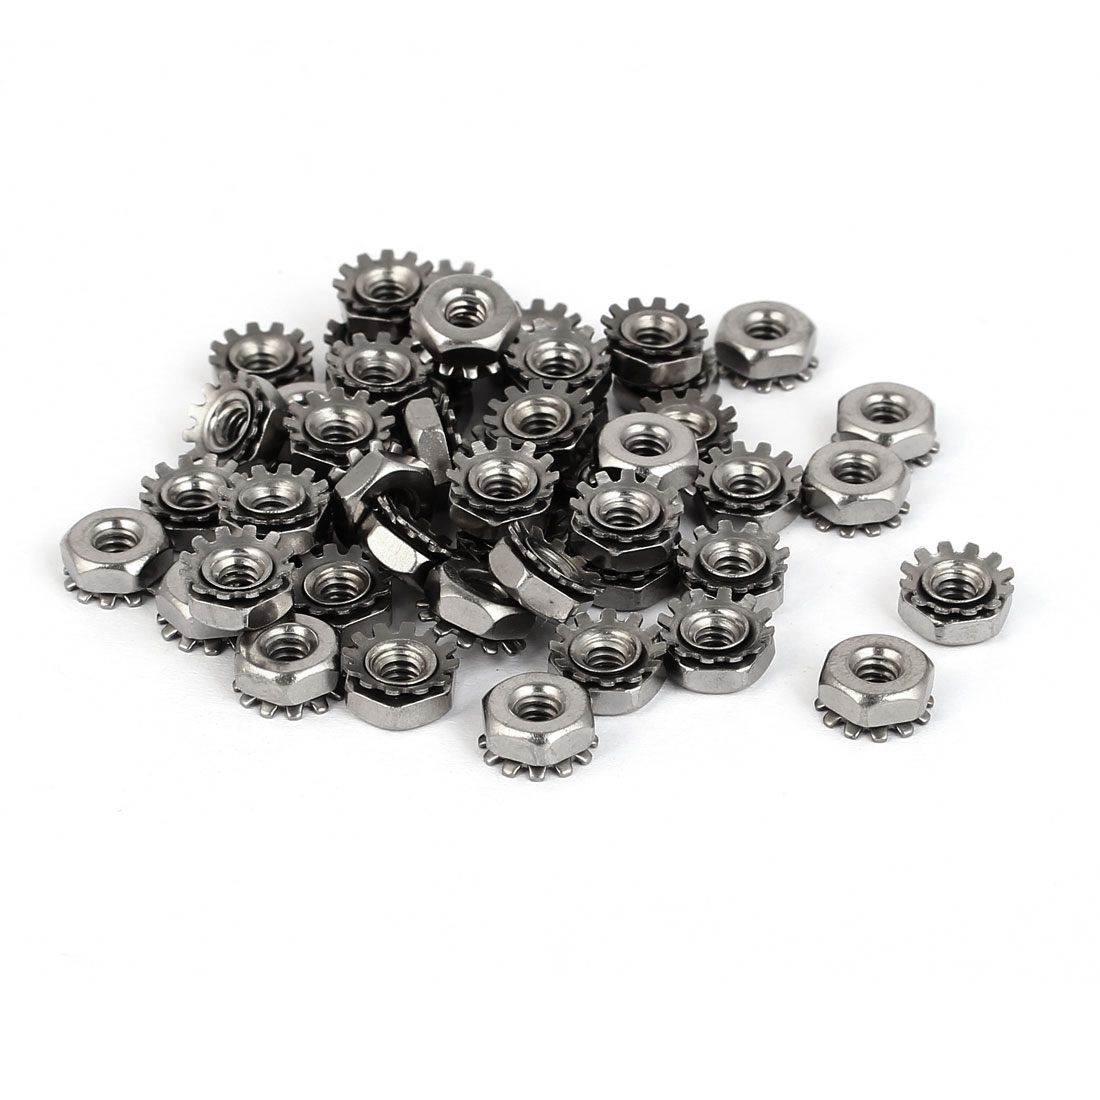 6#-32 304 Stainless Steel Female Thread Kep Hex Head Lock Nut 50pcs